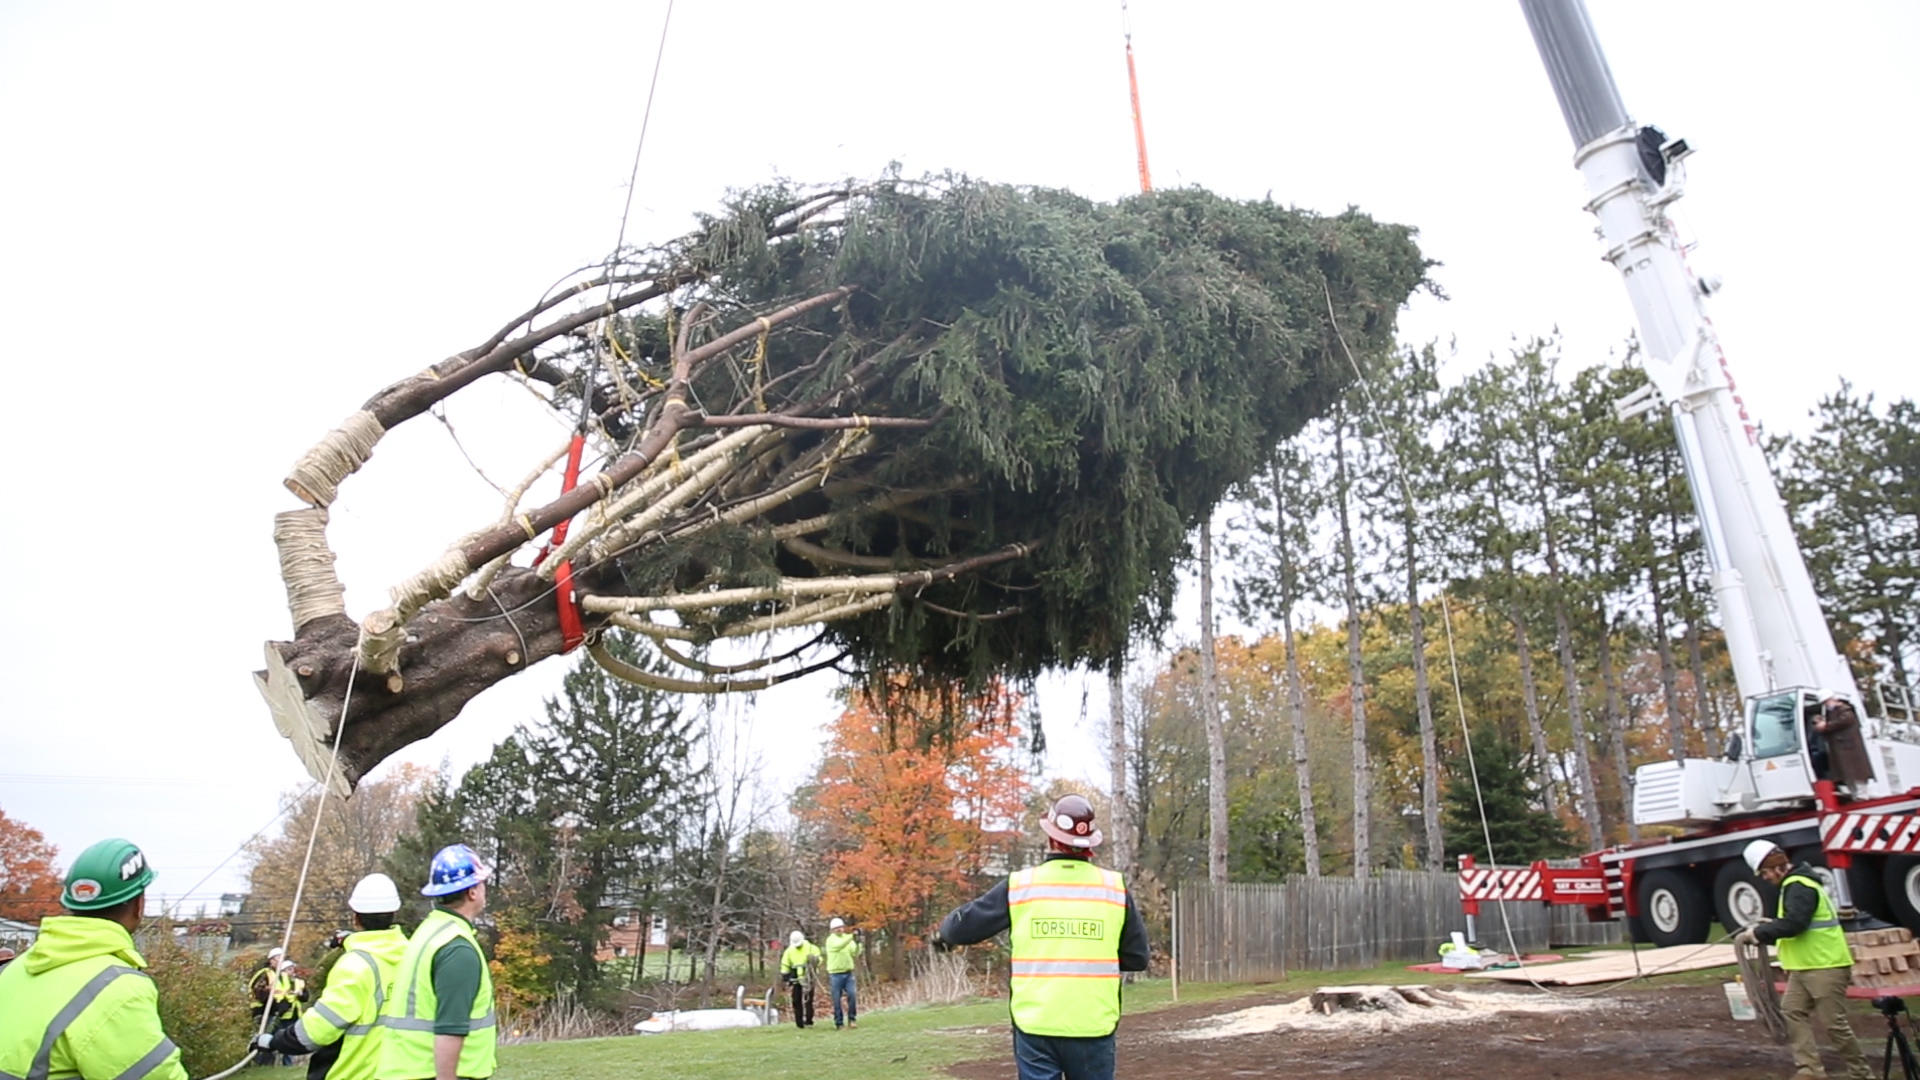 this years rockefeller christmas tree the 75 foot tall norway spruce is making its way to rockefeller center